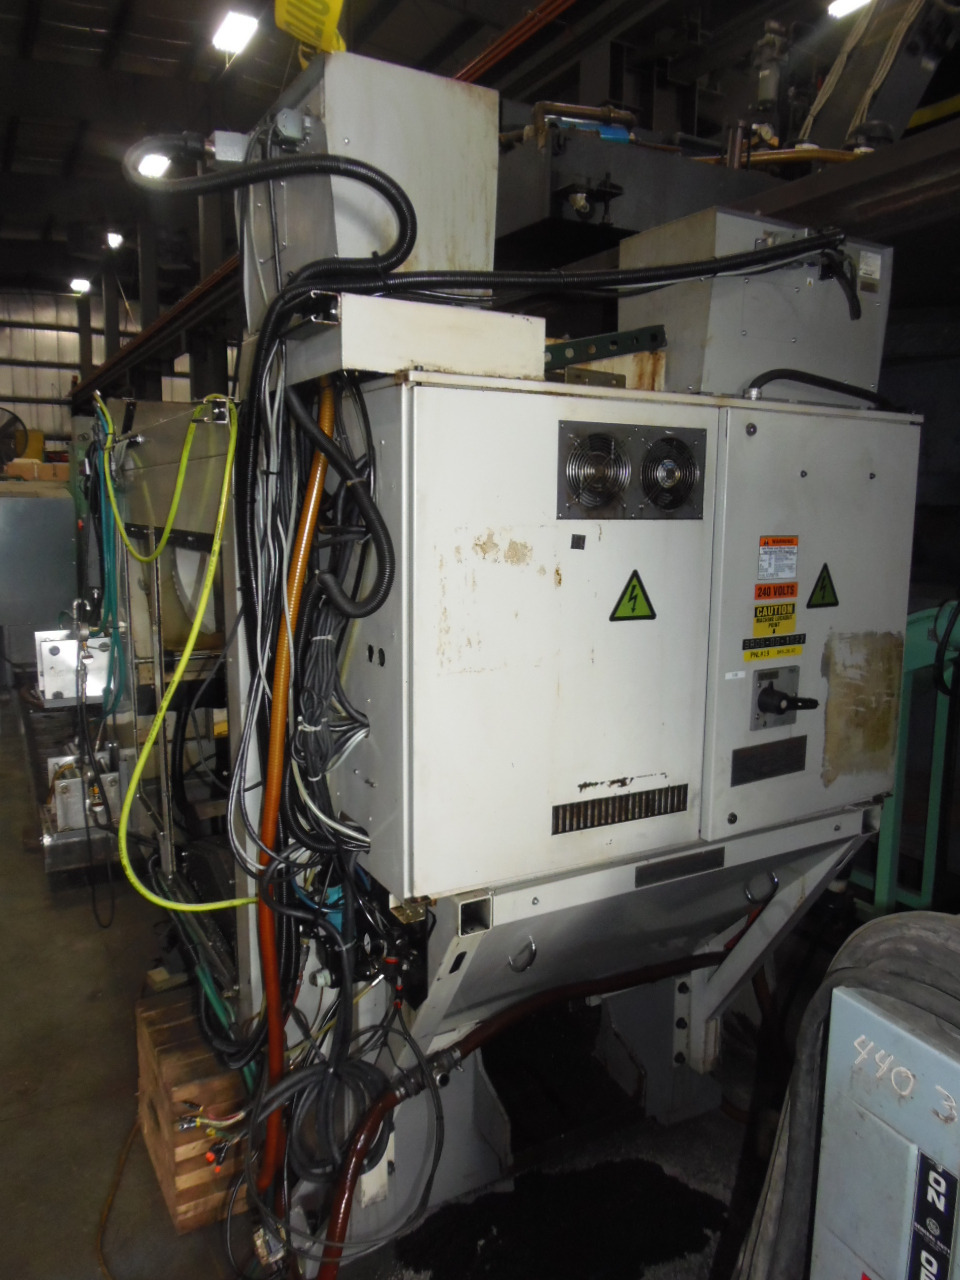 BROTHERS TC-323, 10 ATC, PALLET SHUTTLE, TWIN NIKKEN INDEXORS, COOLANT